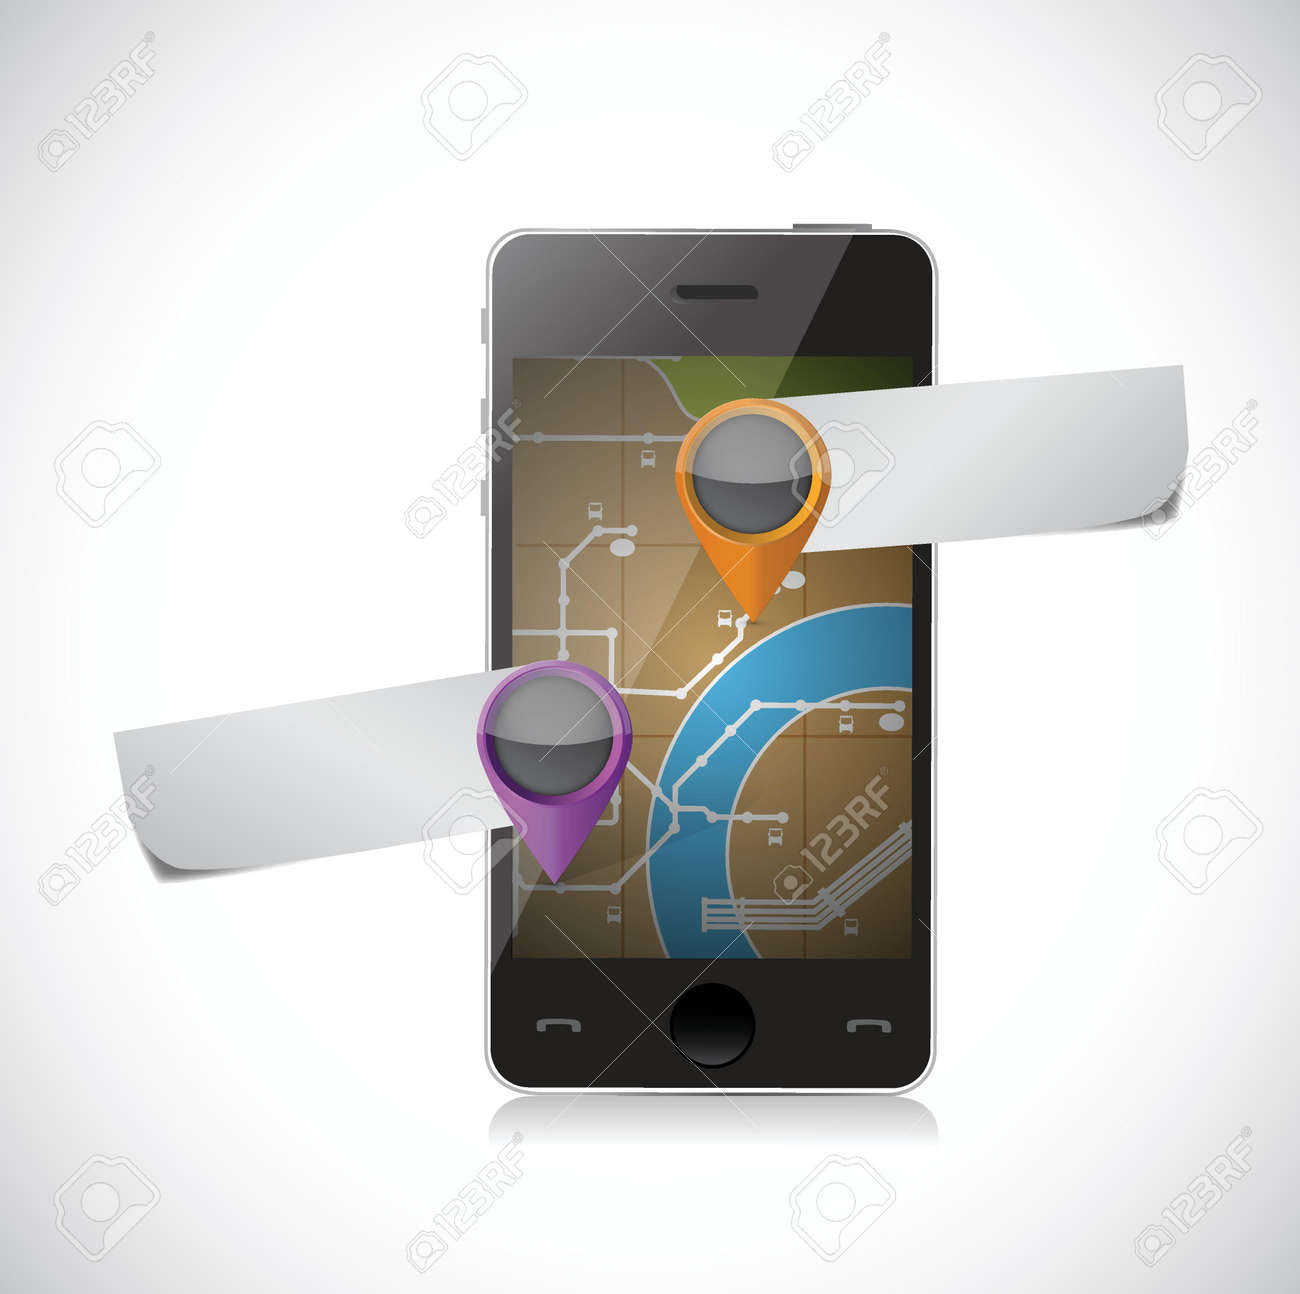 phone gps map and pointer illustration over a white background Stock Vector - 24681053